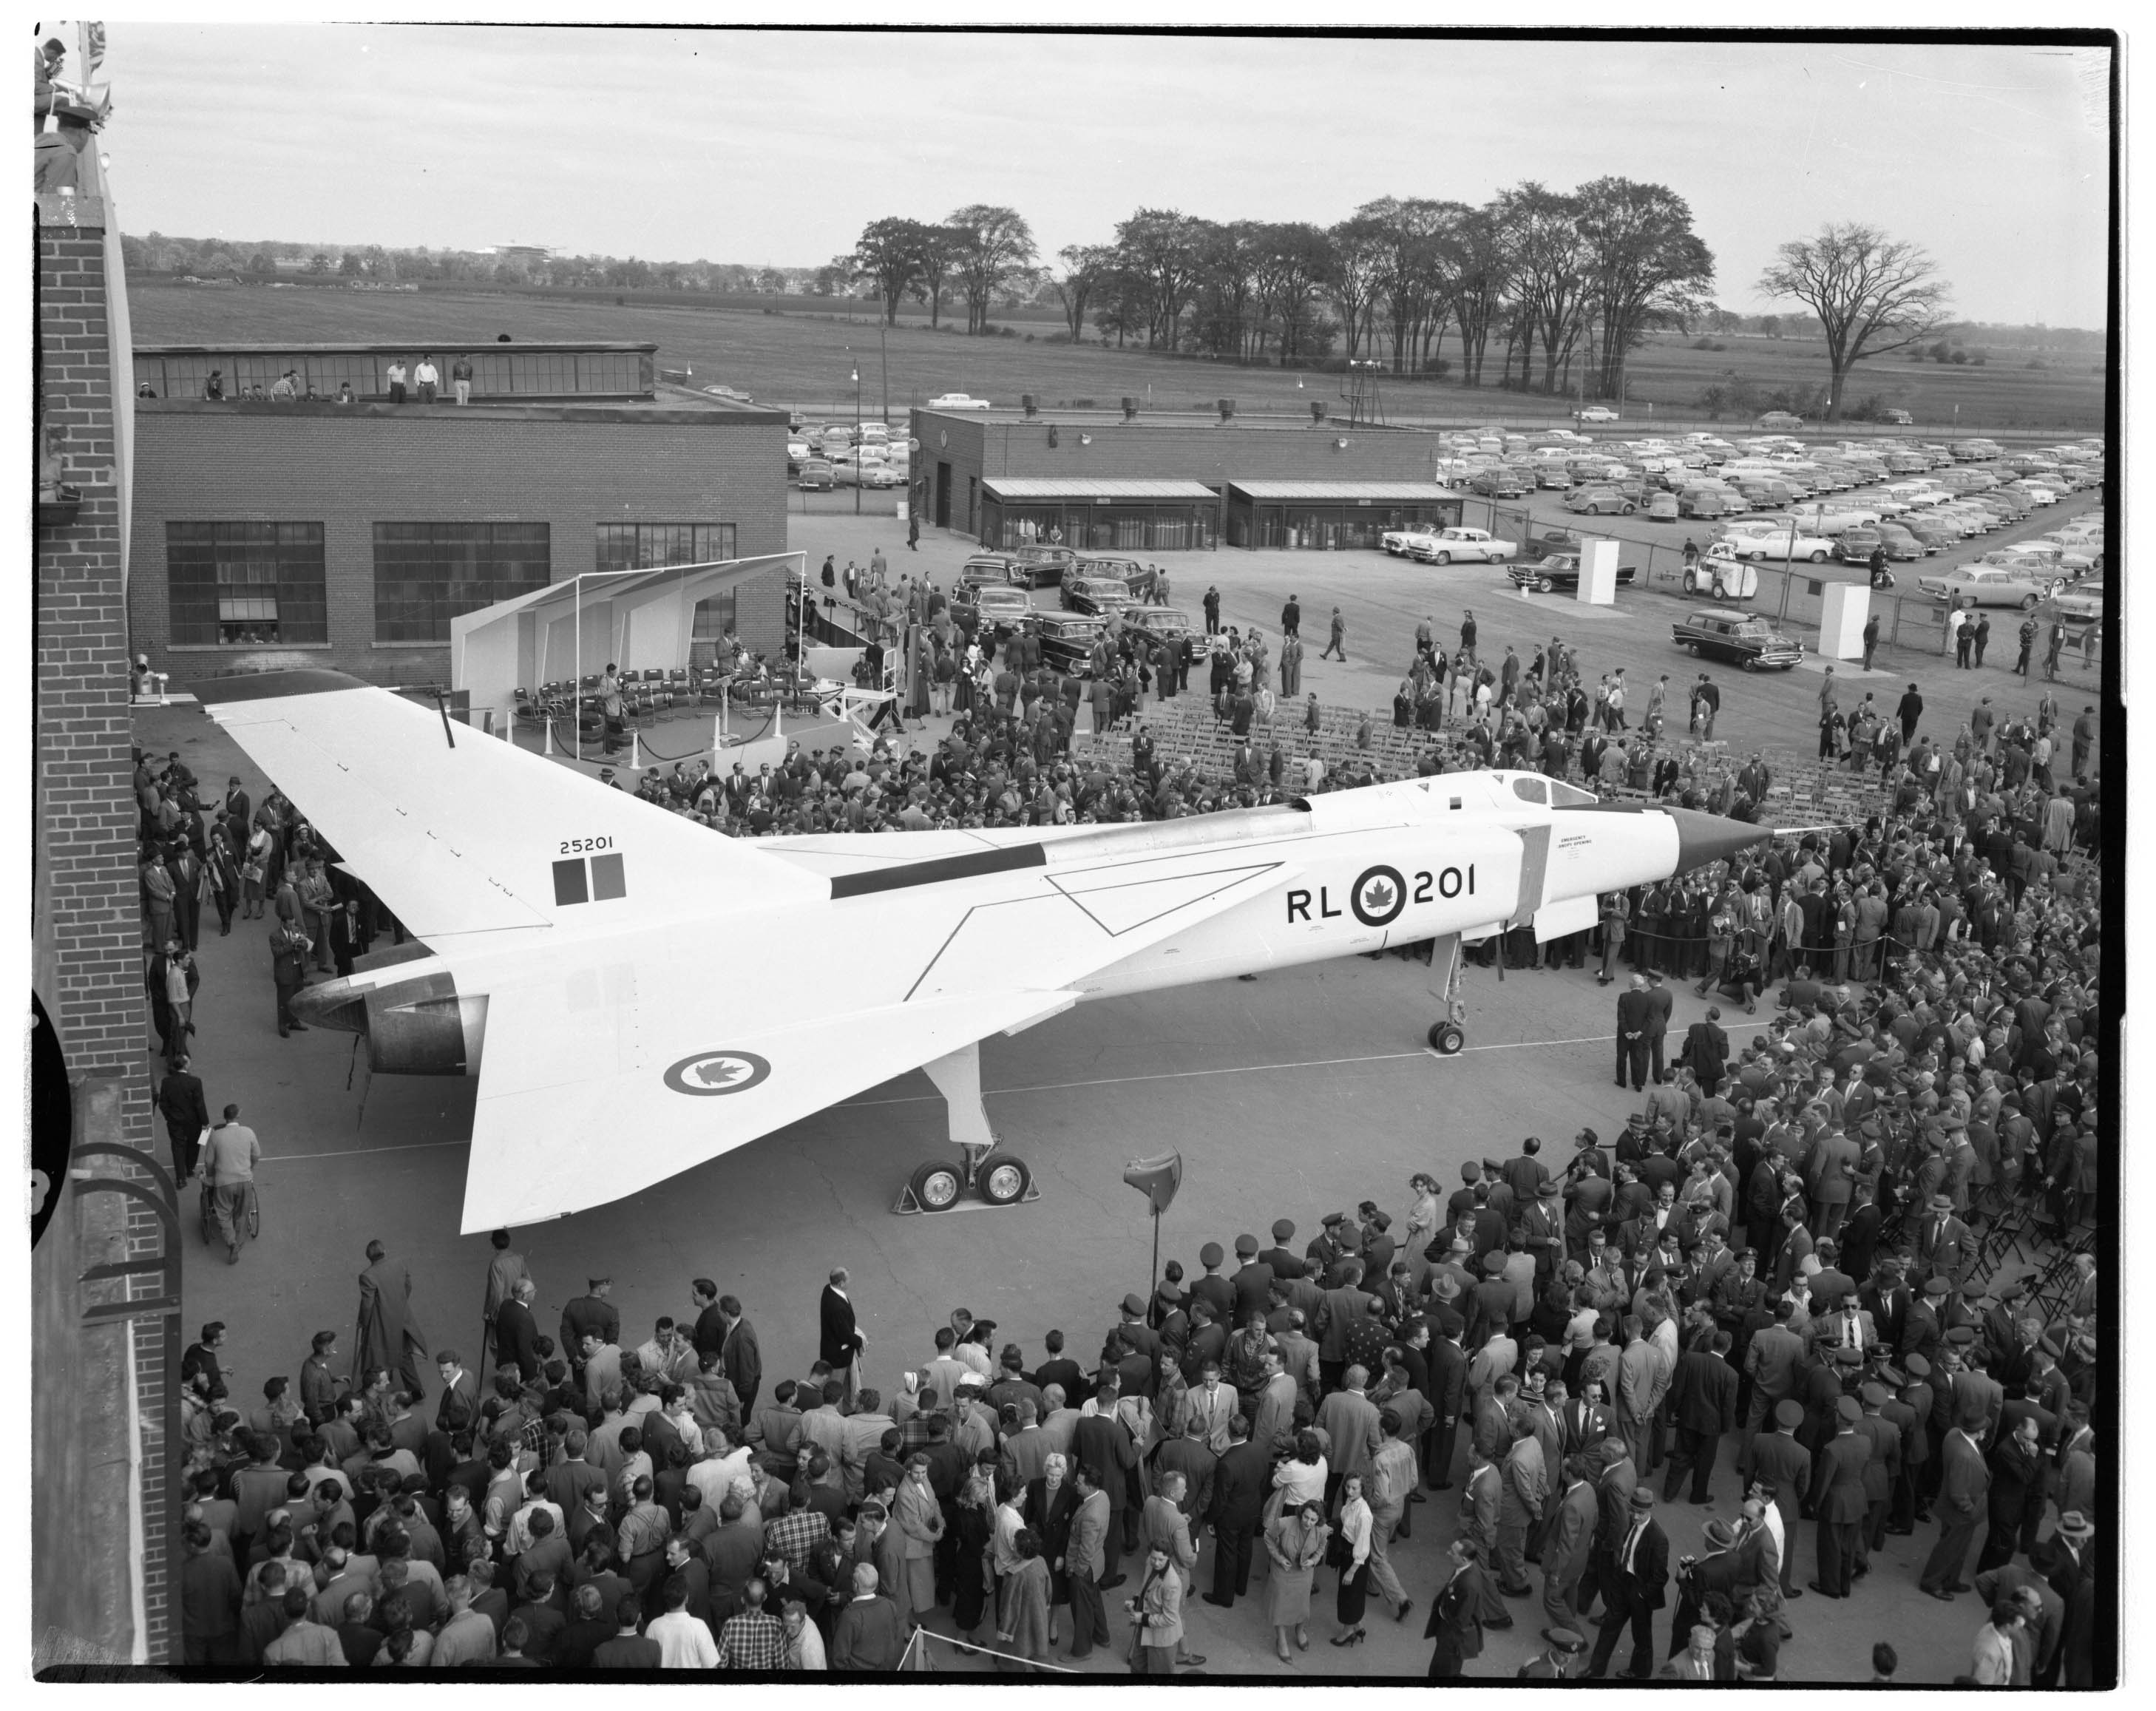 A black-and-white photograph of a crowd of people around a white aircraft.